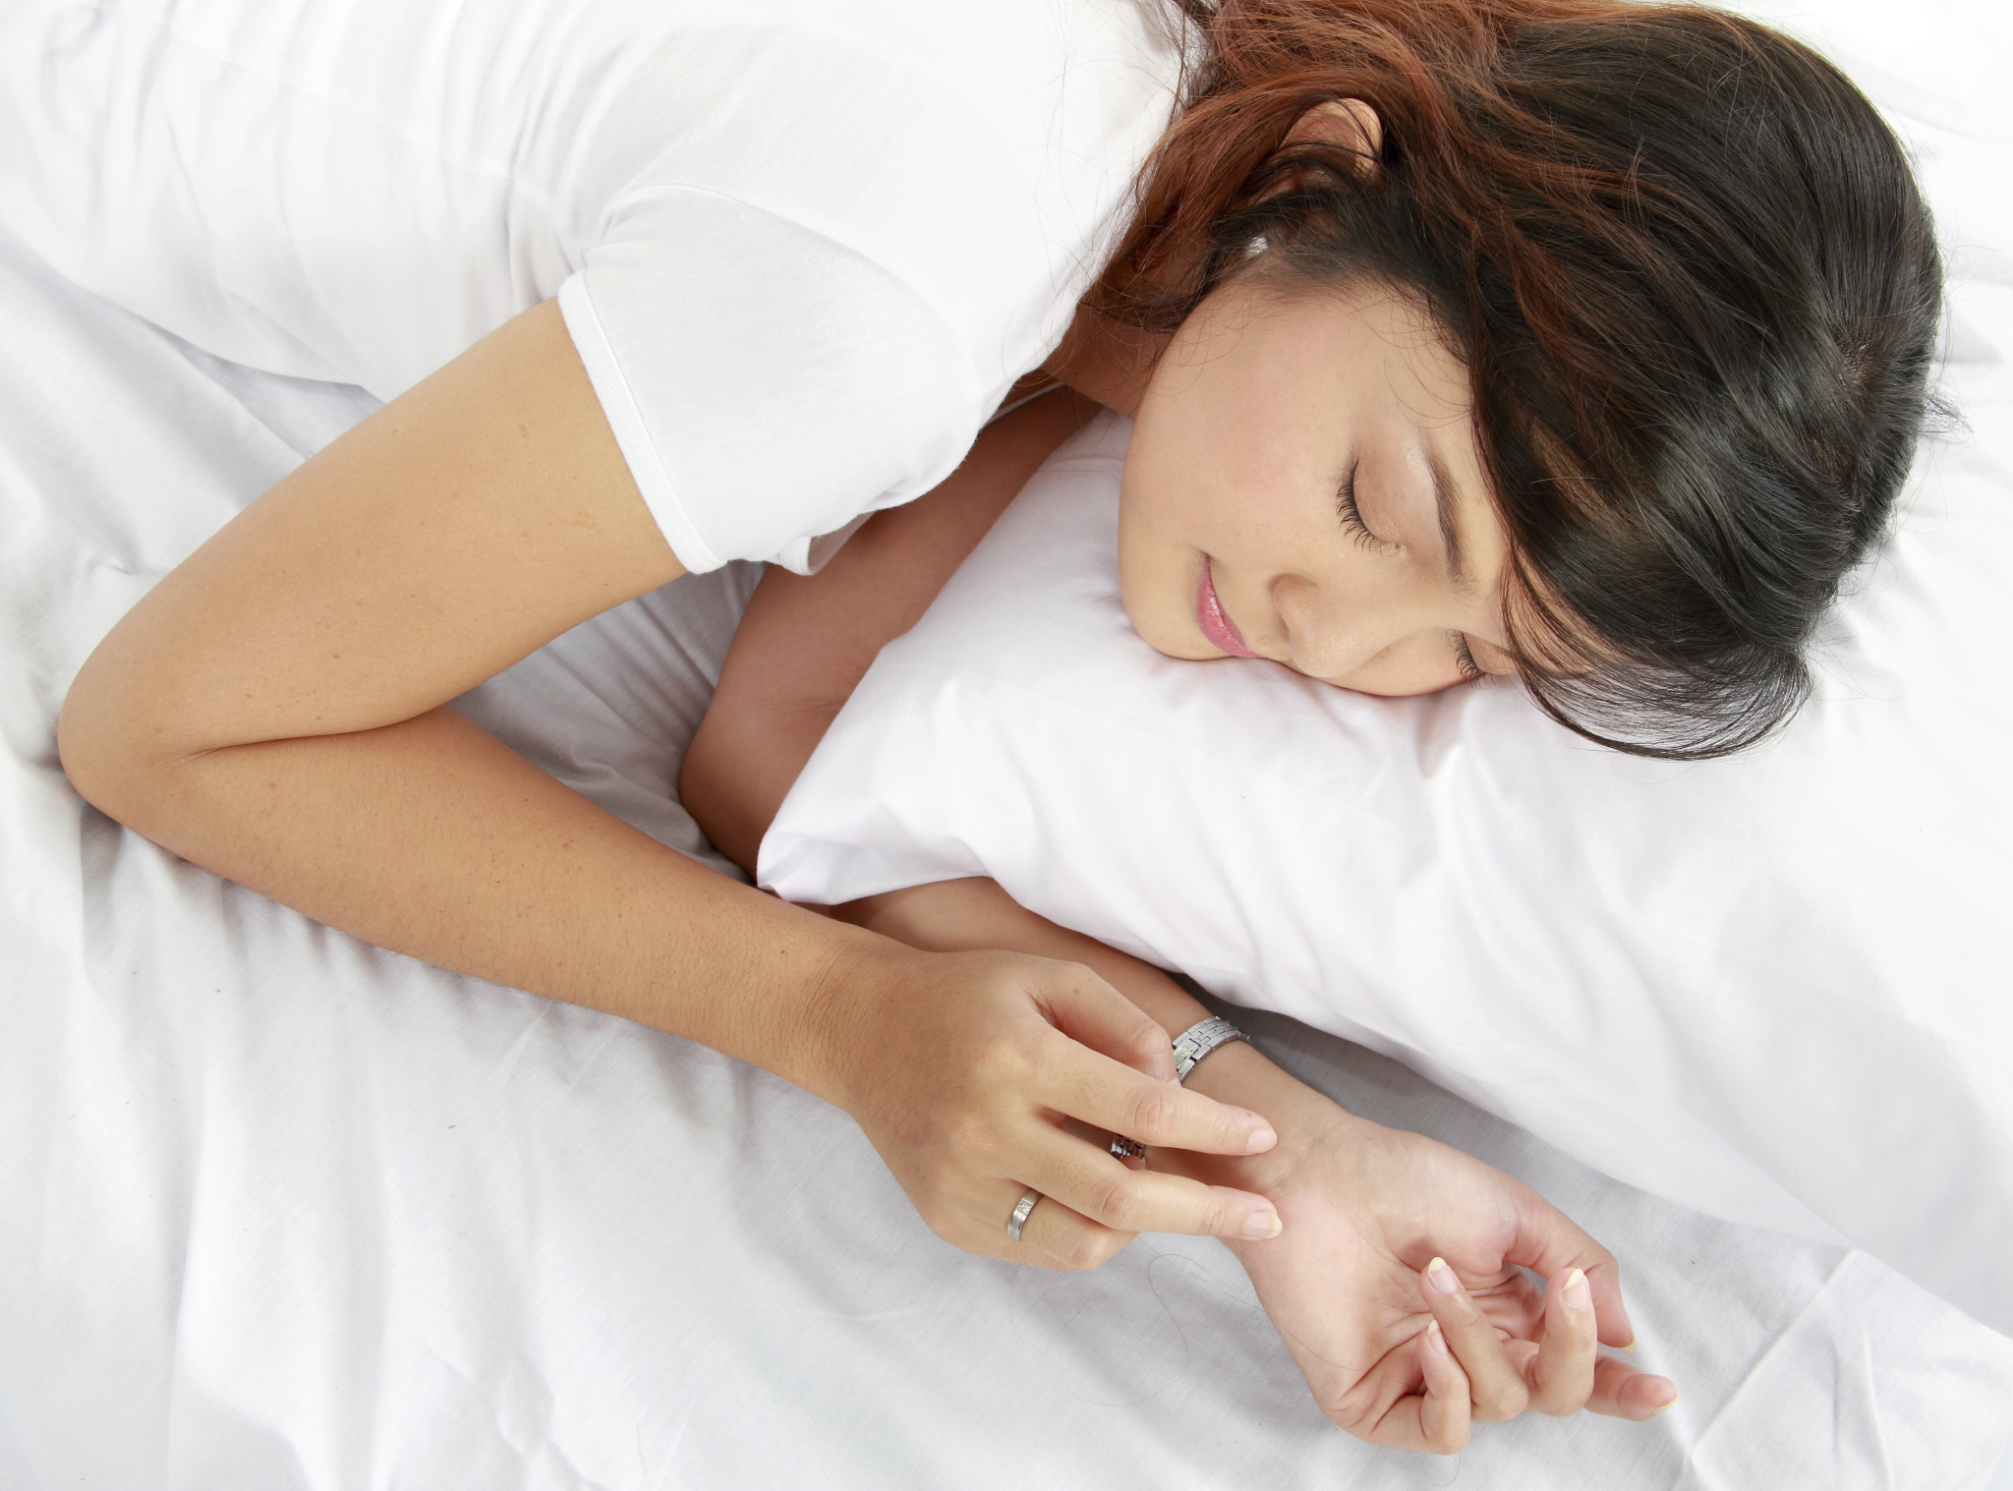 The Importance Of Sleep For Teenagers